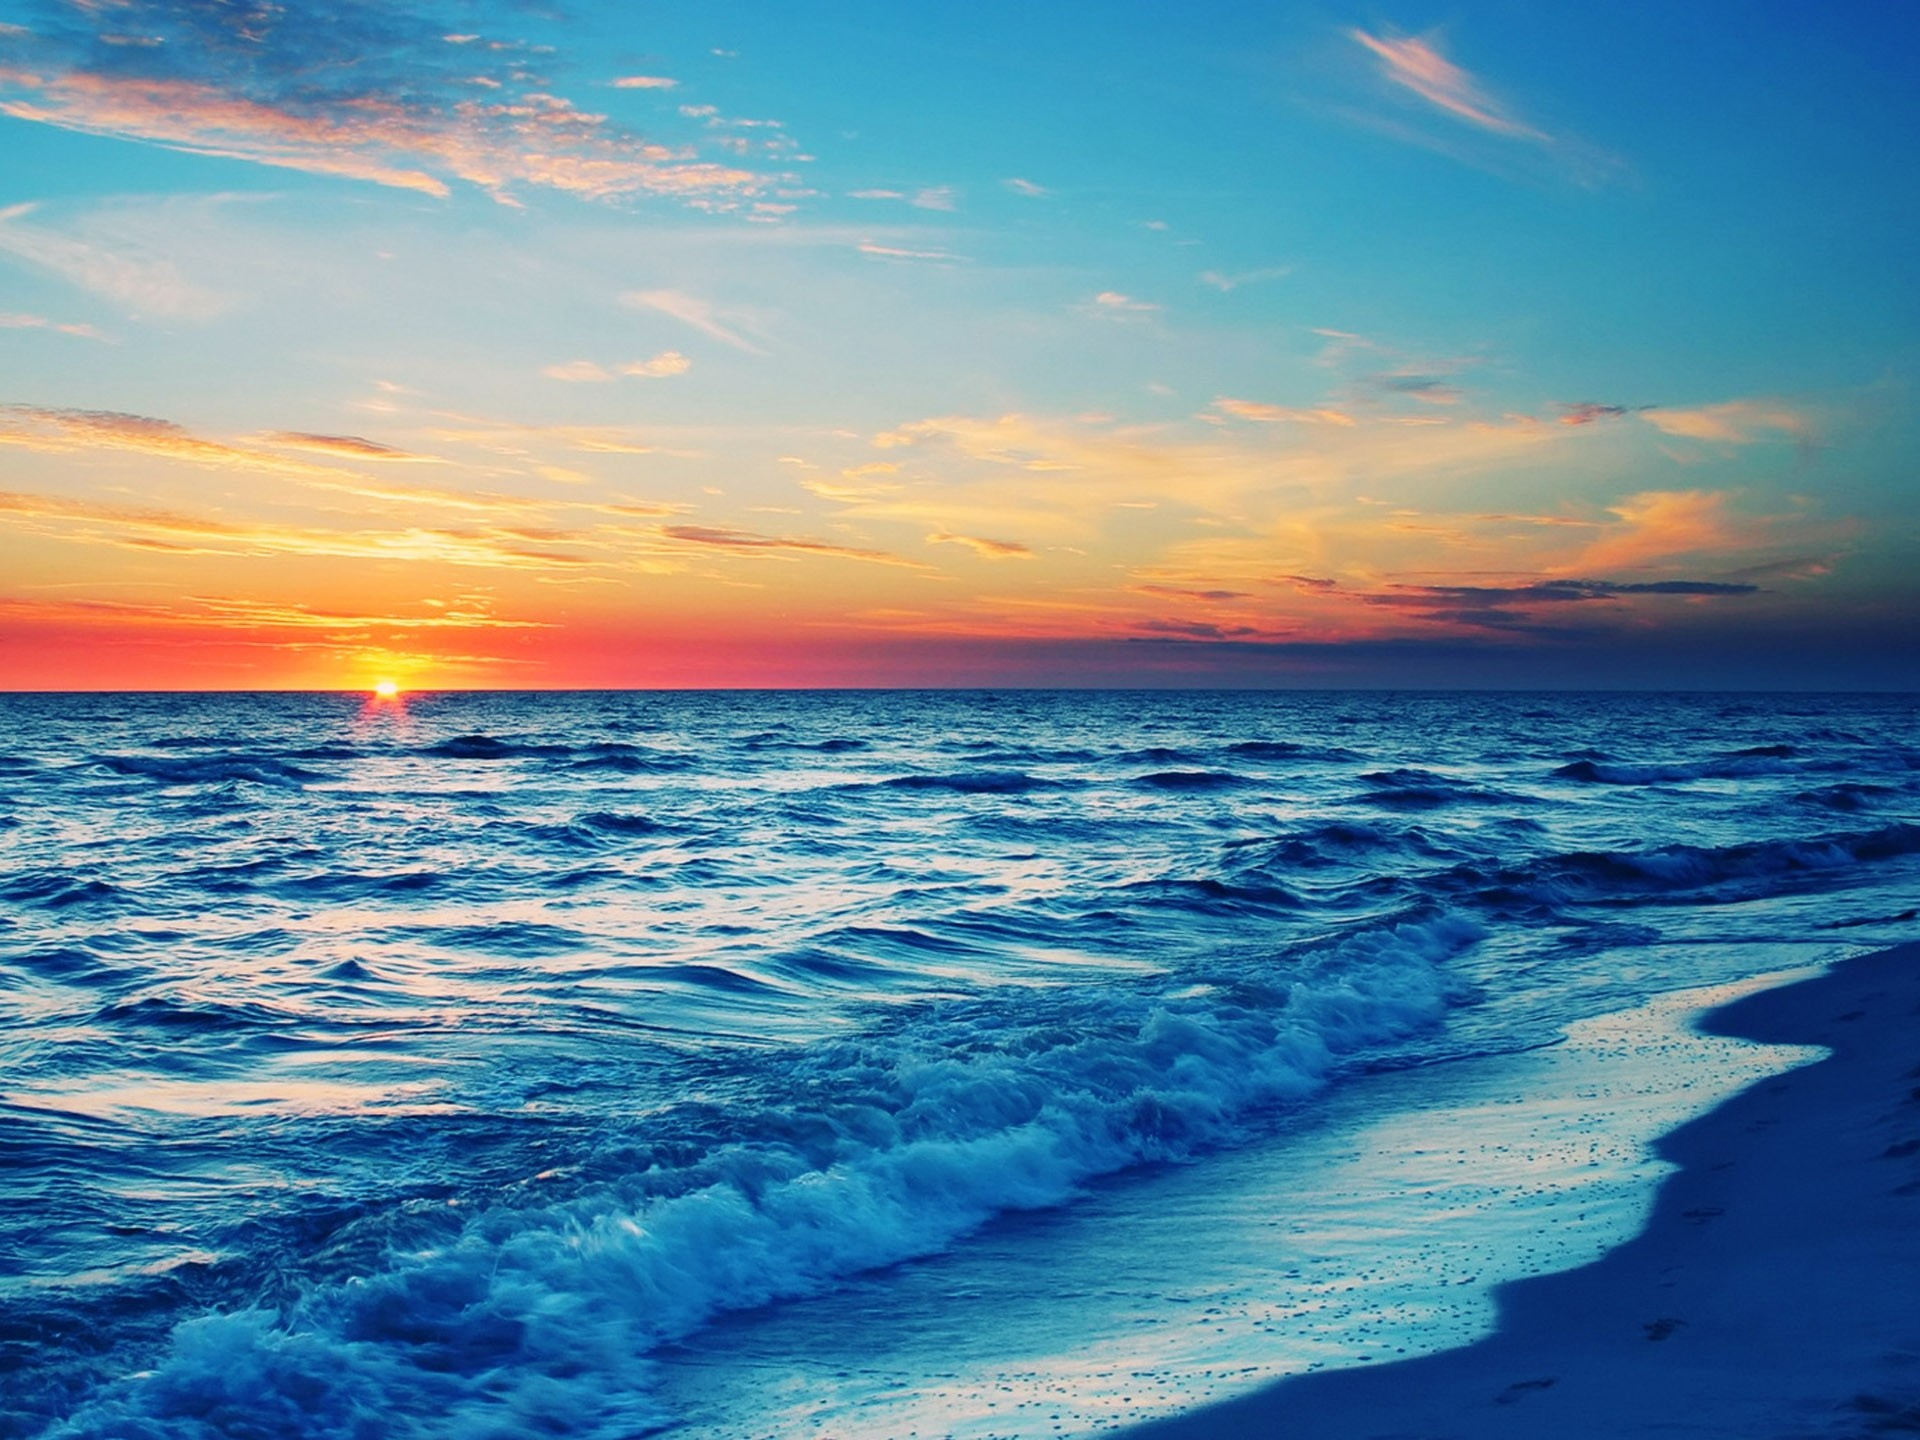 Beautiful Ocean Scenes Wallpaper 46 Images